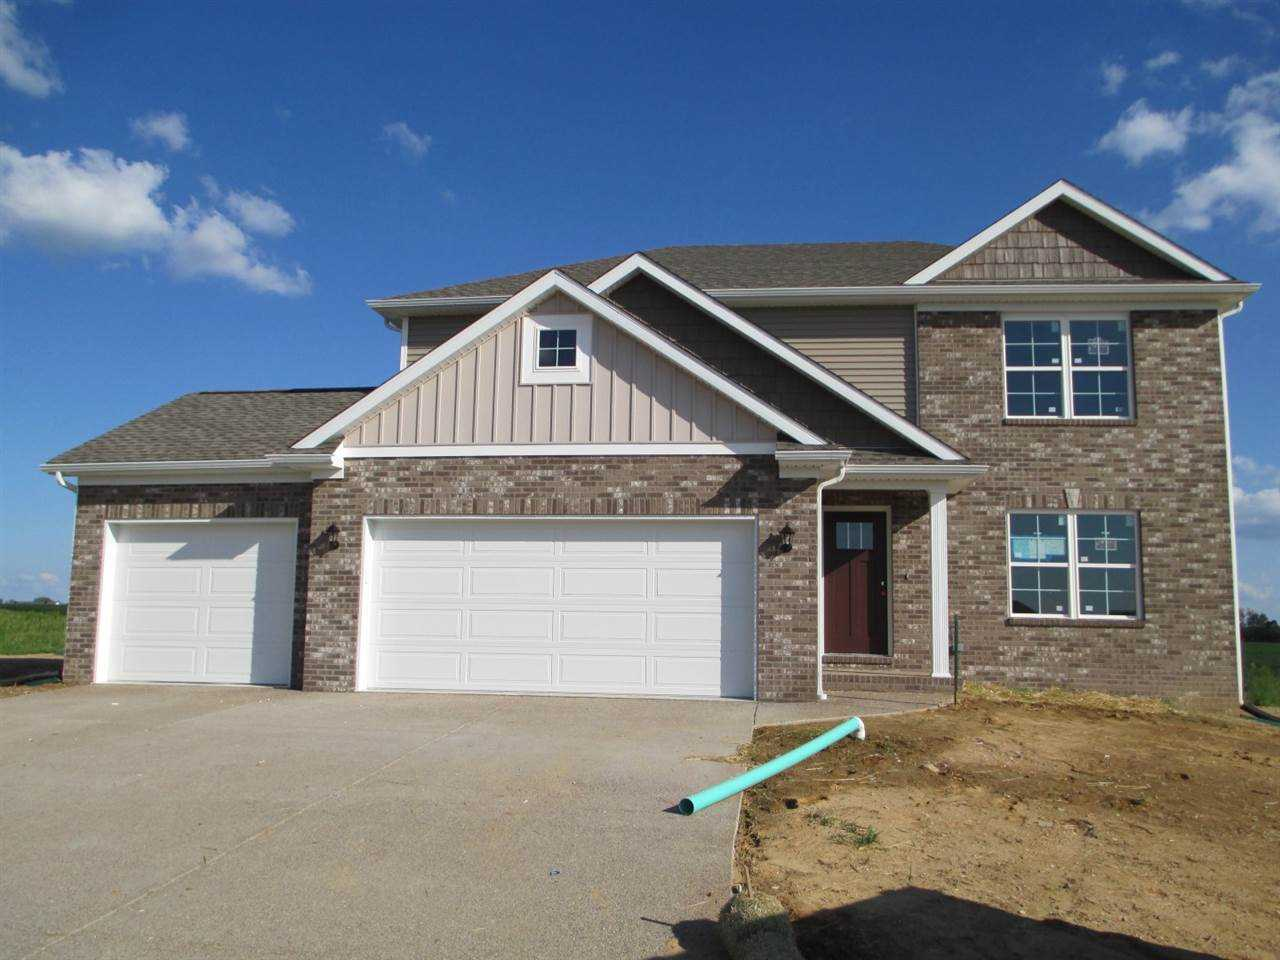 4133 Chappell Drive Evansville, IN 47725 | MLS 201736737 Photo 1